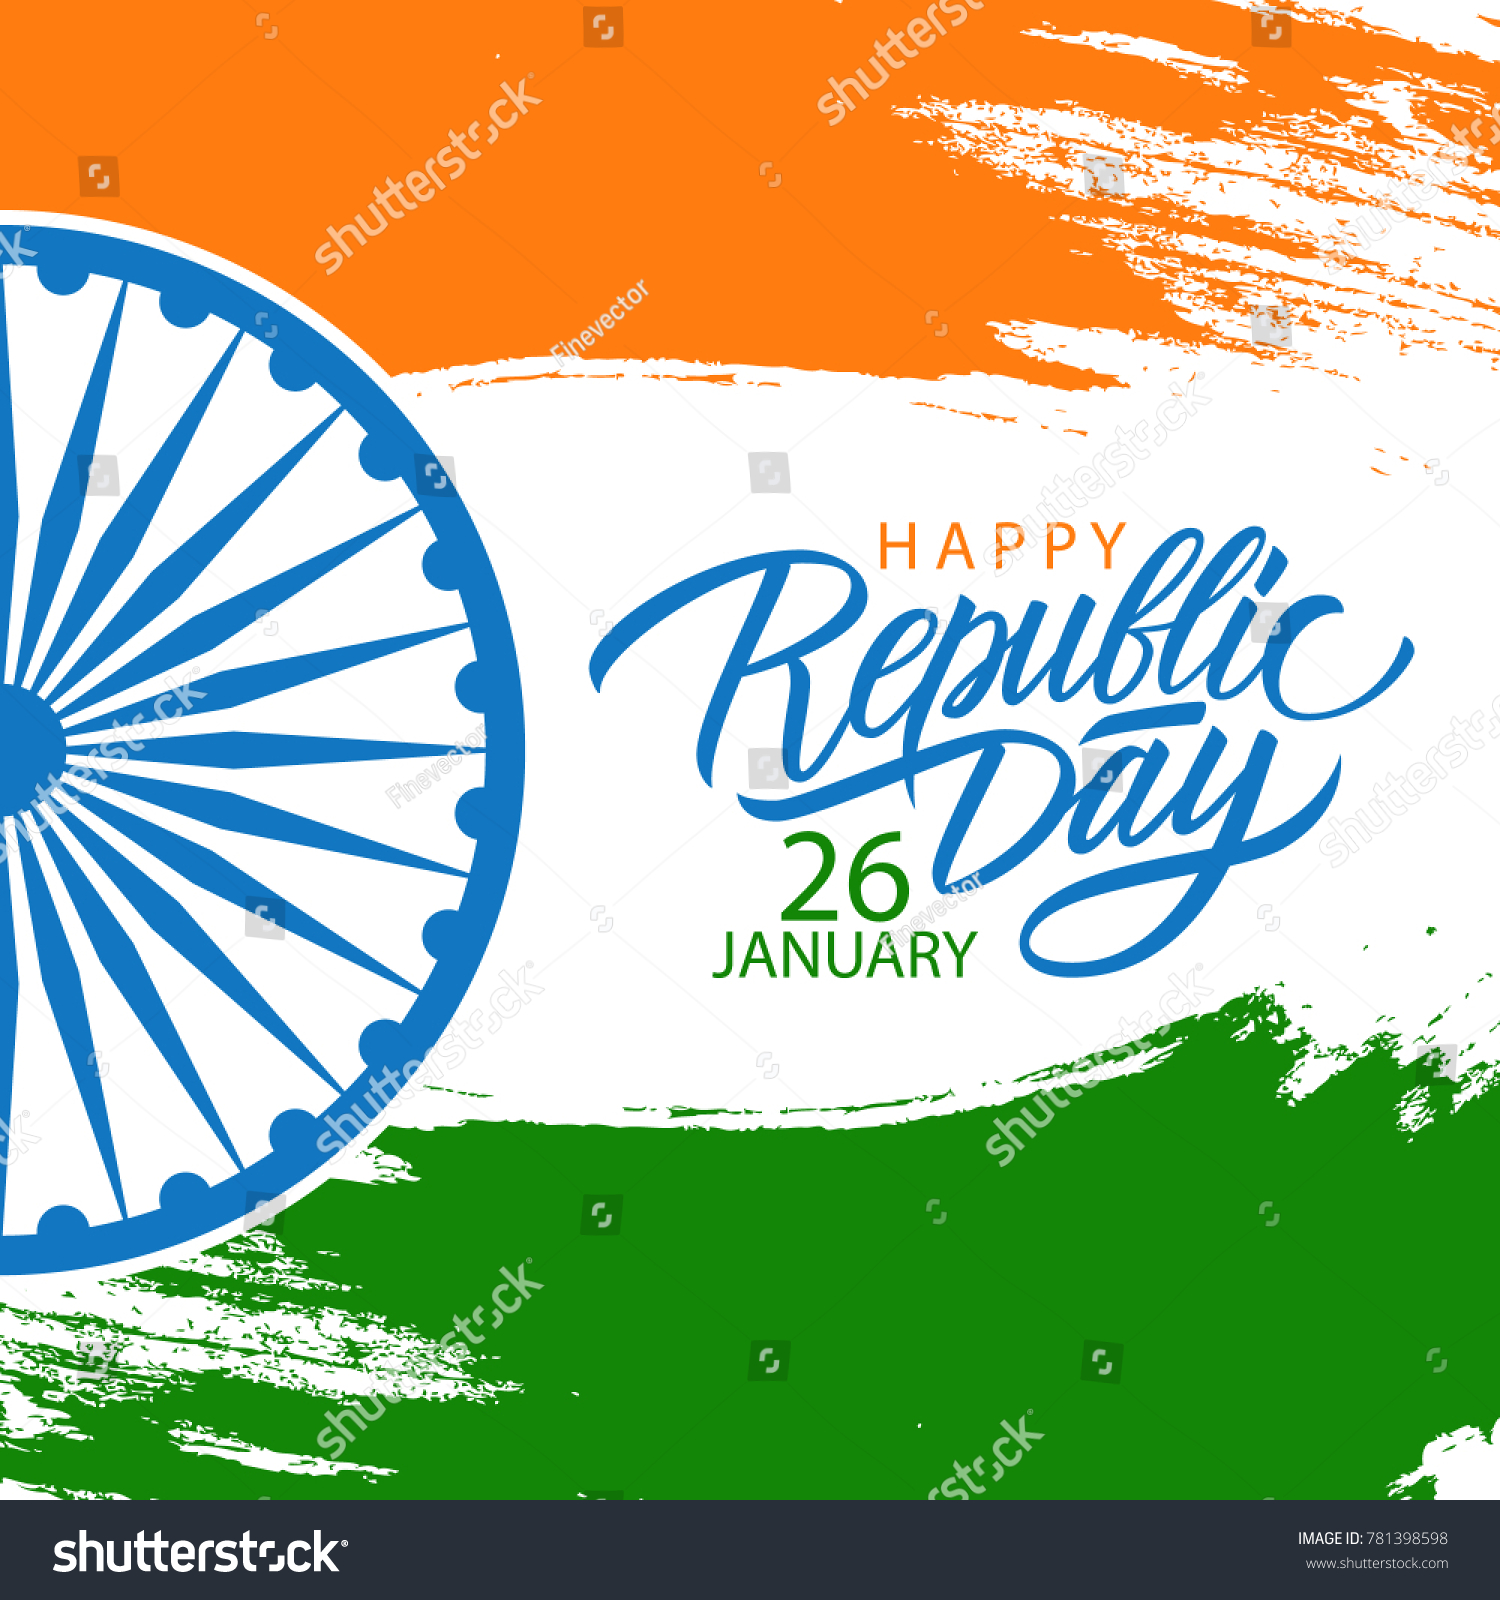 India happy republic day celebrate card stock vector royalty free india happy republic day celebrate card with hand lettering holiday greetings and brush stroke in colors m4hsunfo